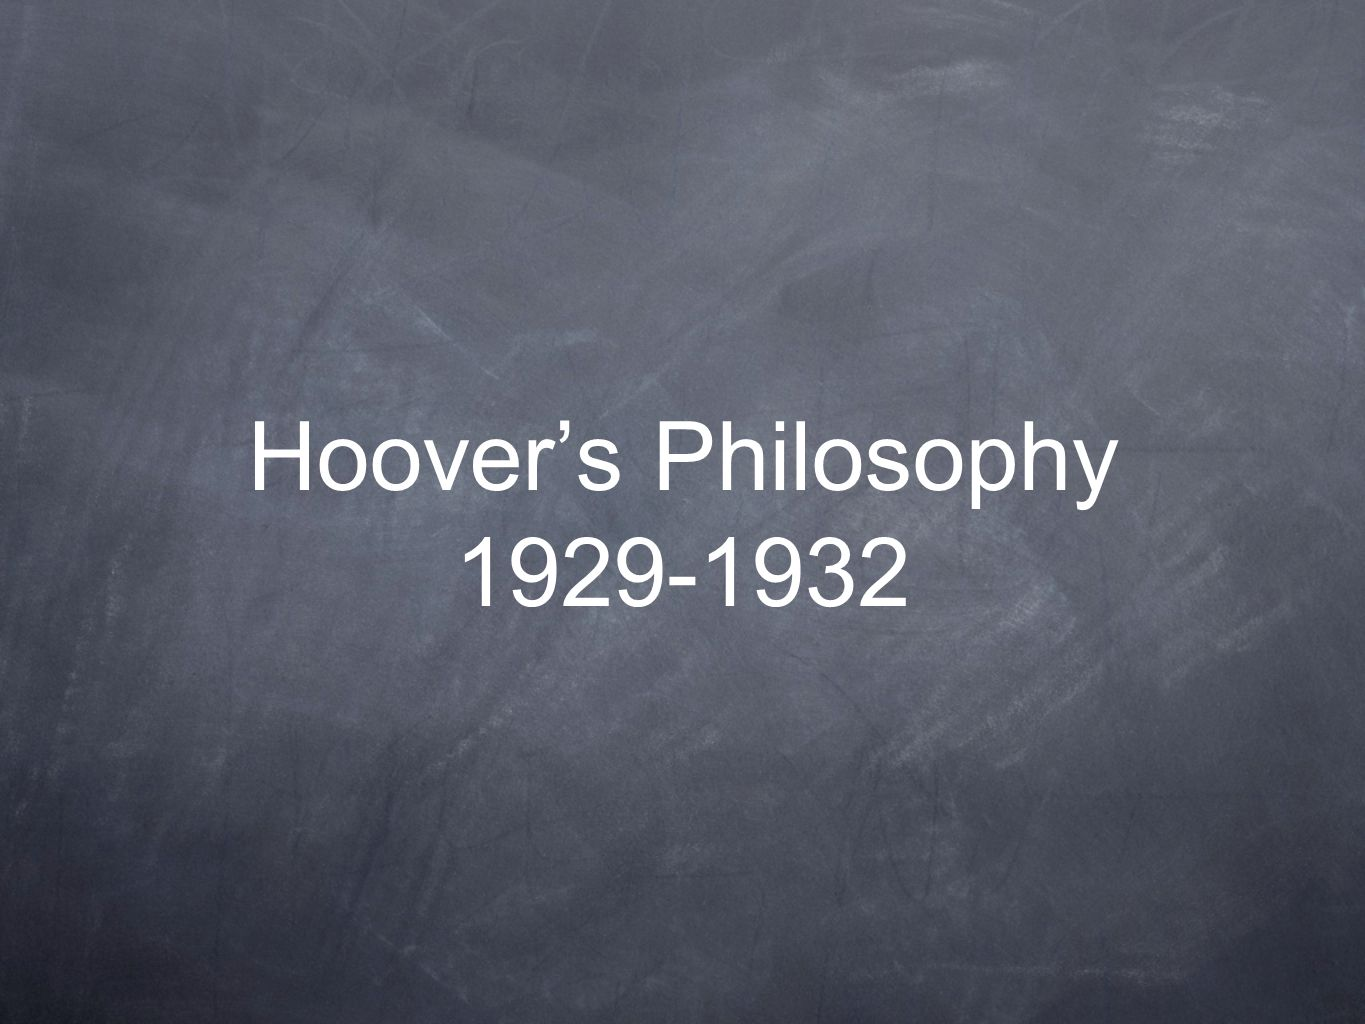 Hoover's Philosophy 1929-1932